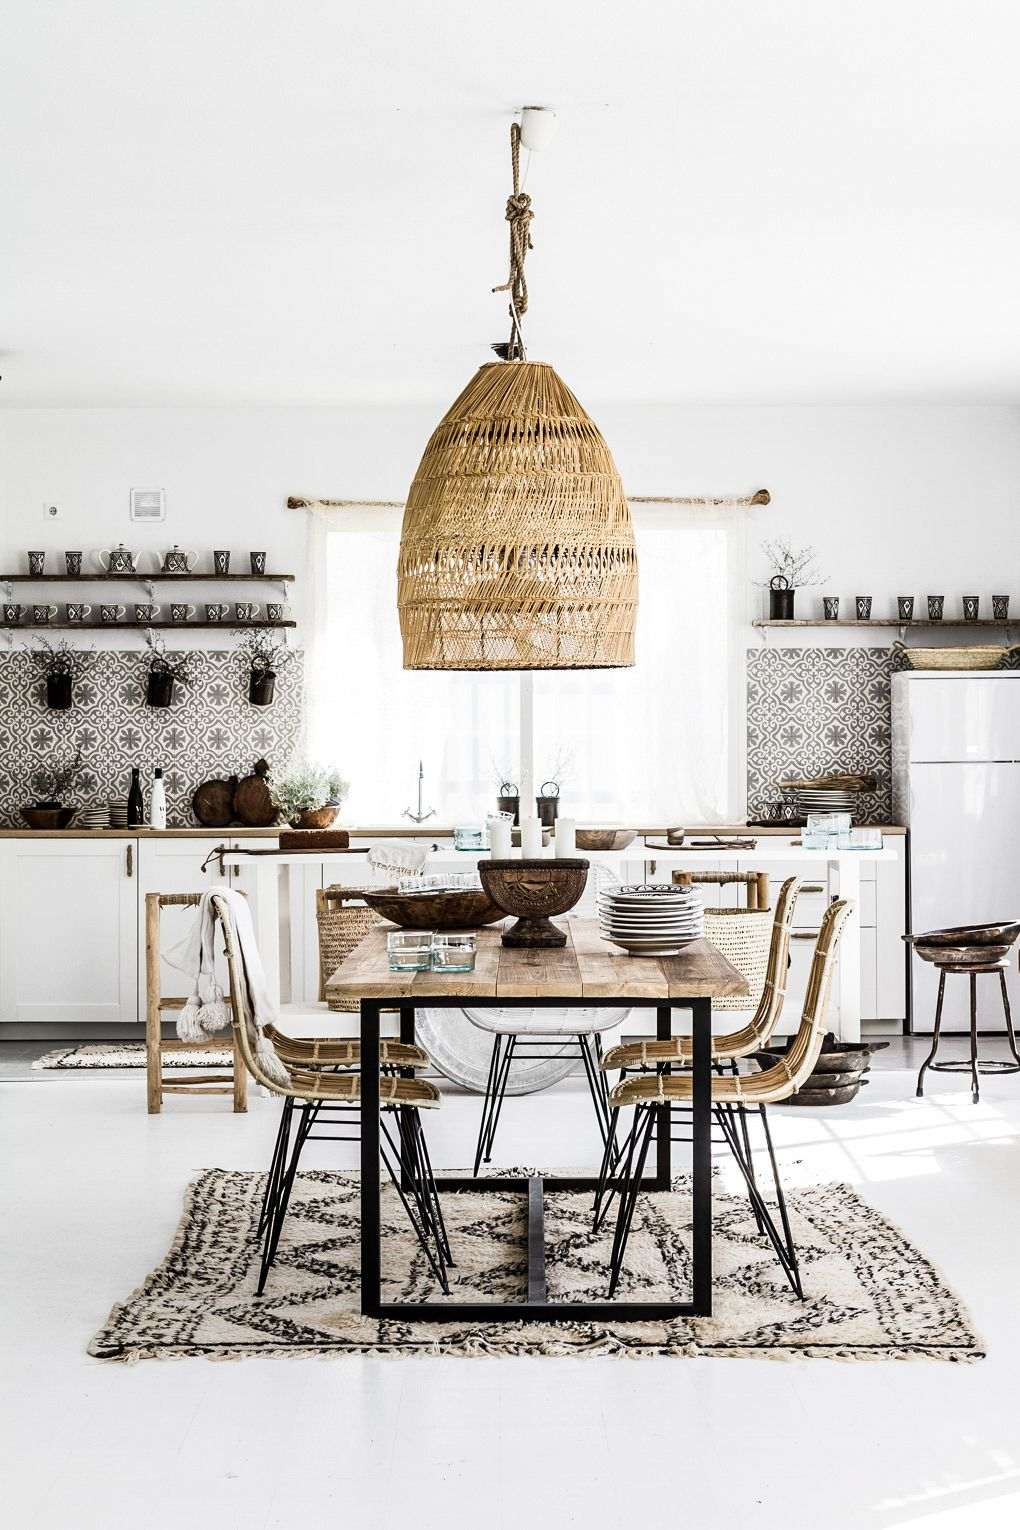 Cocoon inspiring home interior design ideas bycocoon bathroom kitchen products renovations hotel  villa projects dutch also rh ar pinterest